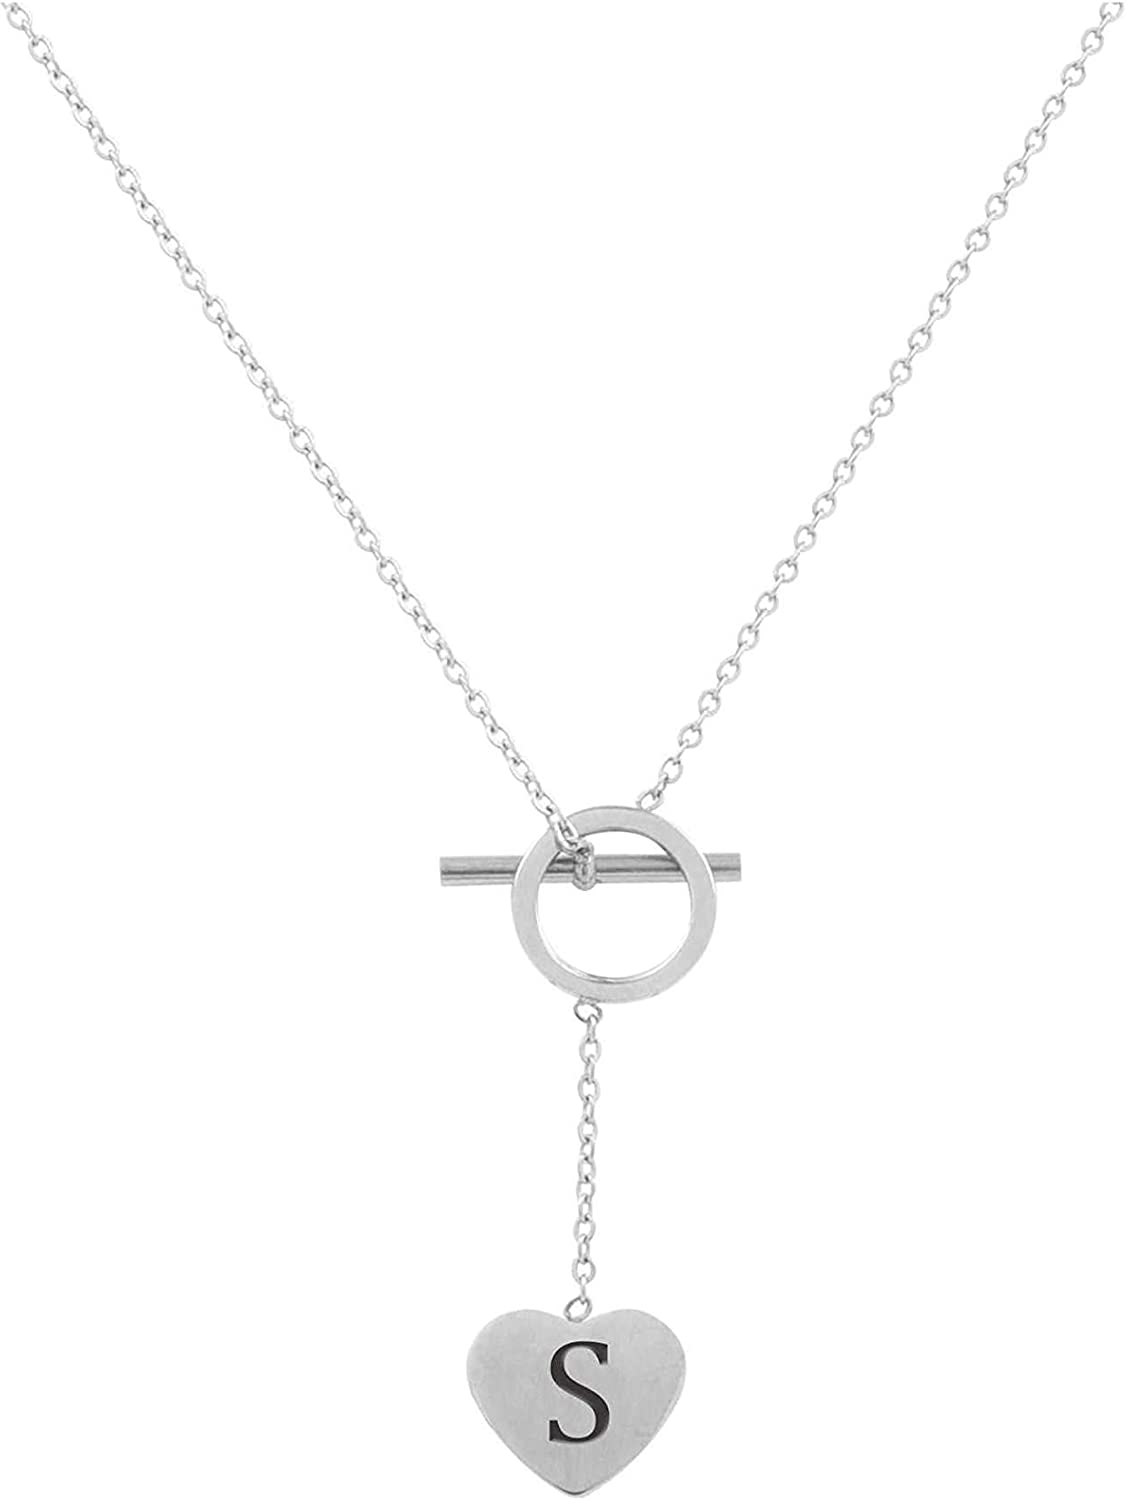 Pink Box Heart Lariat Initial Necklace S Silver